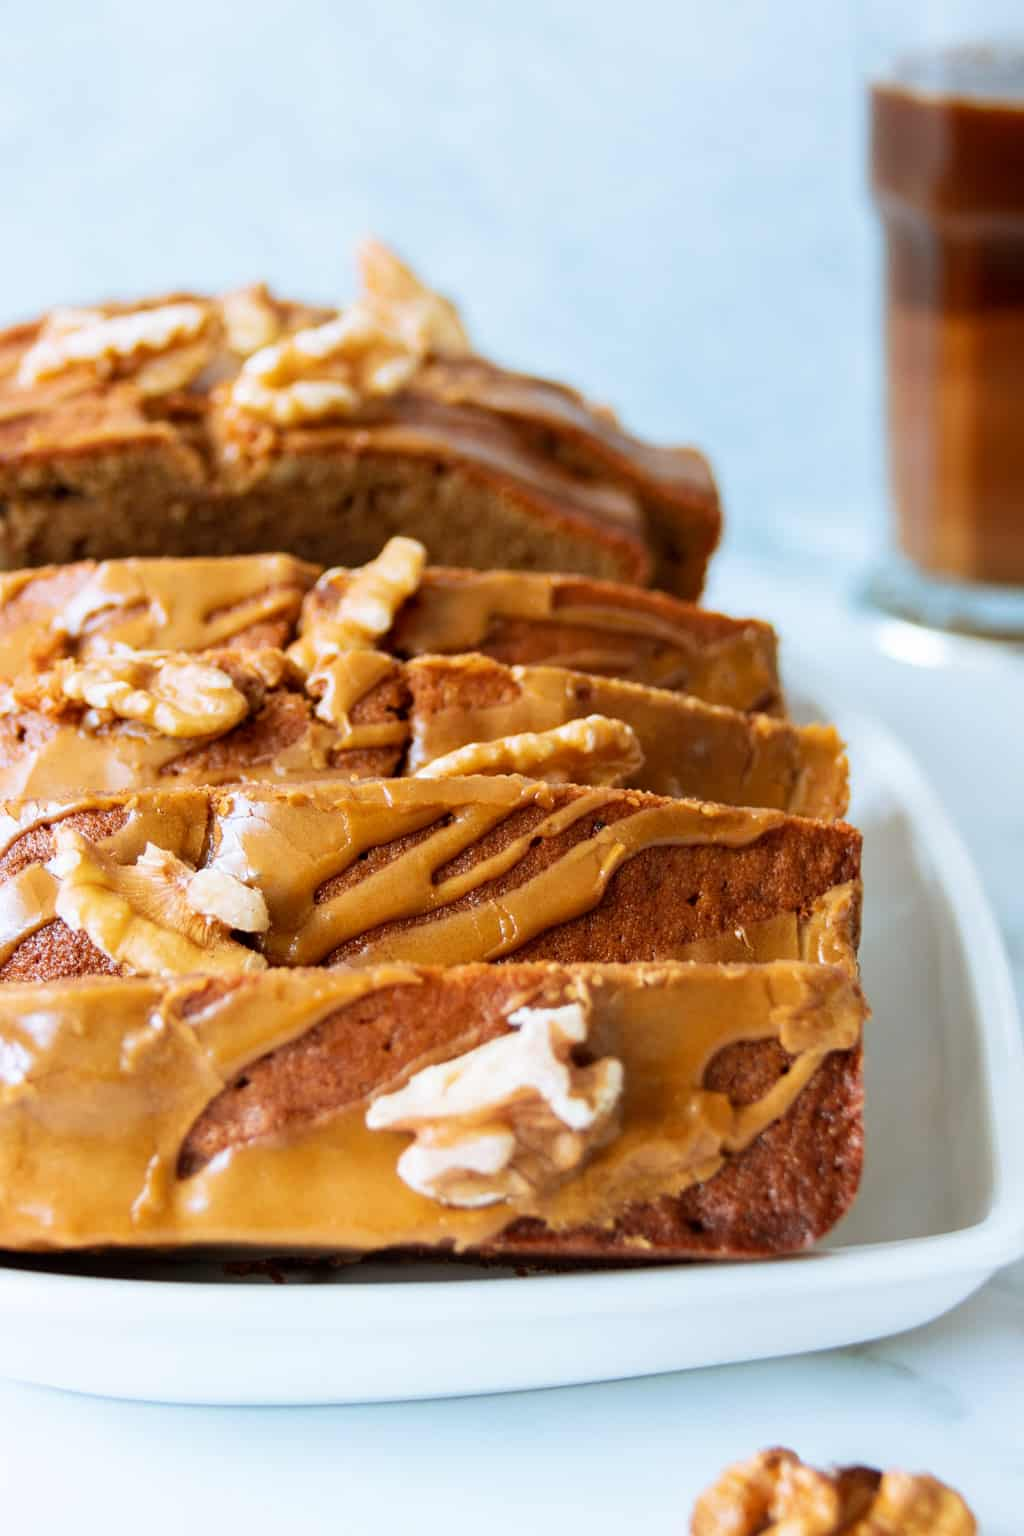 Coffee walnut cake with coffee glaze